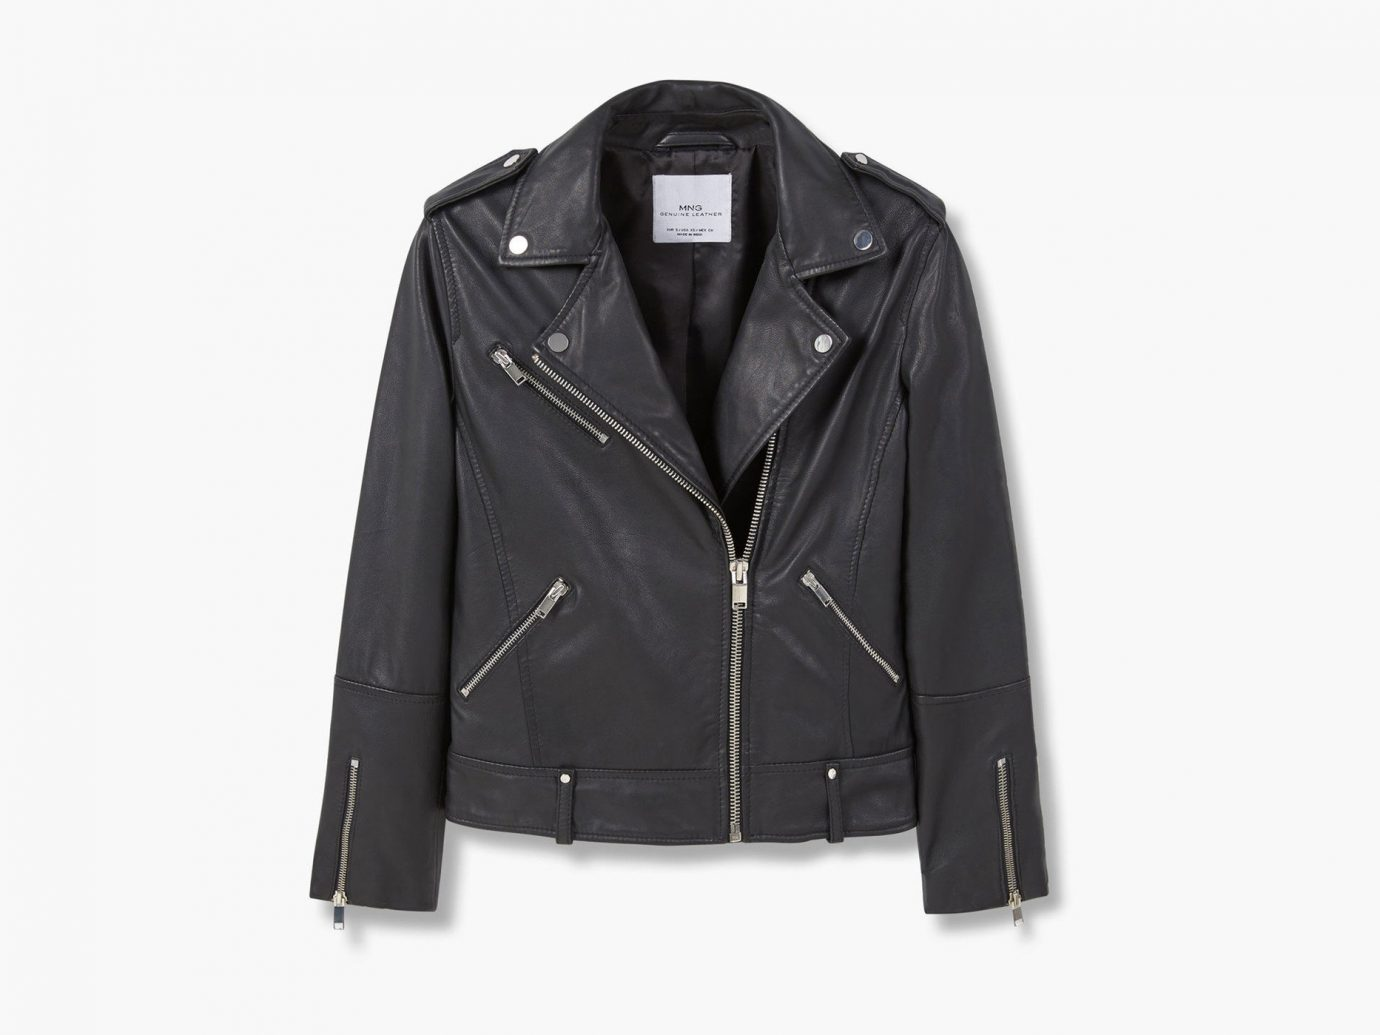 Style + Design clothing suit person jacket leather wearing leather jacket black outerwear textile coat posing material blazer dressed